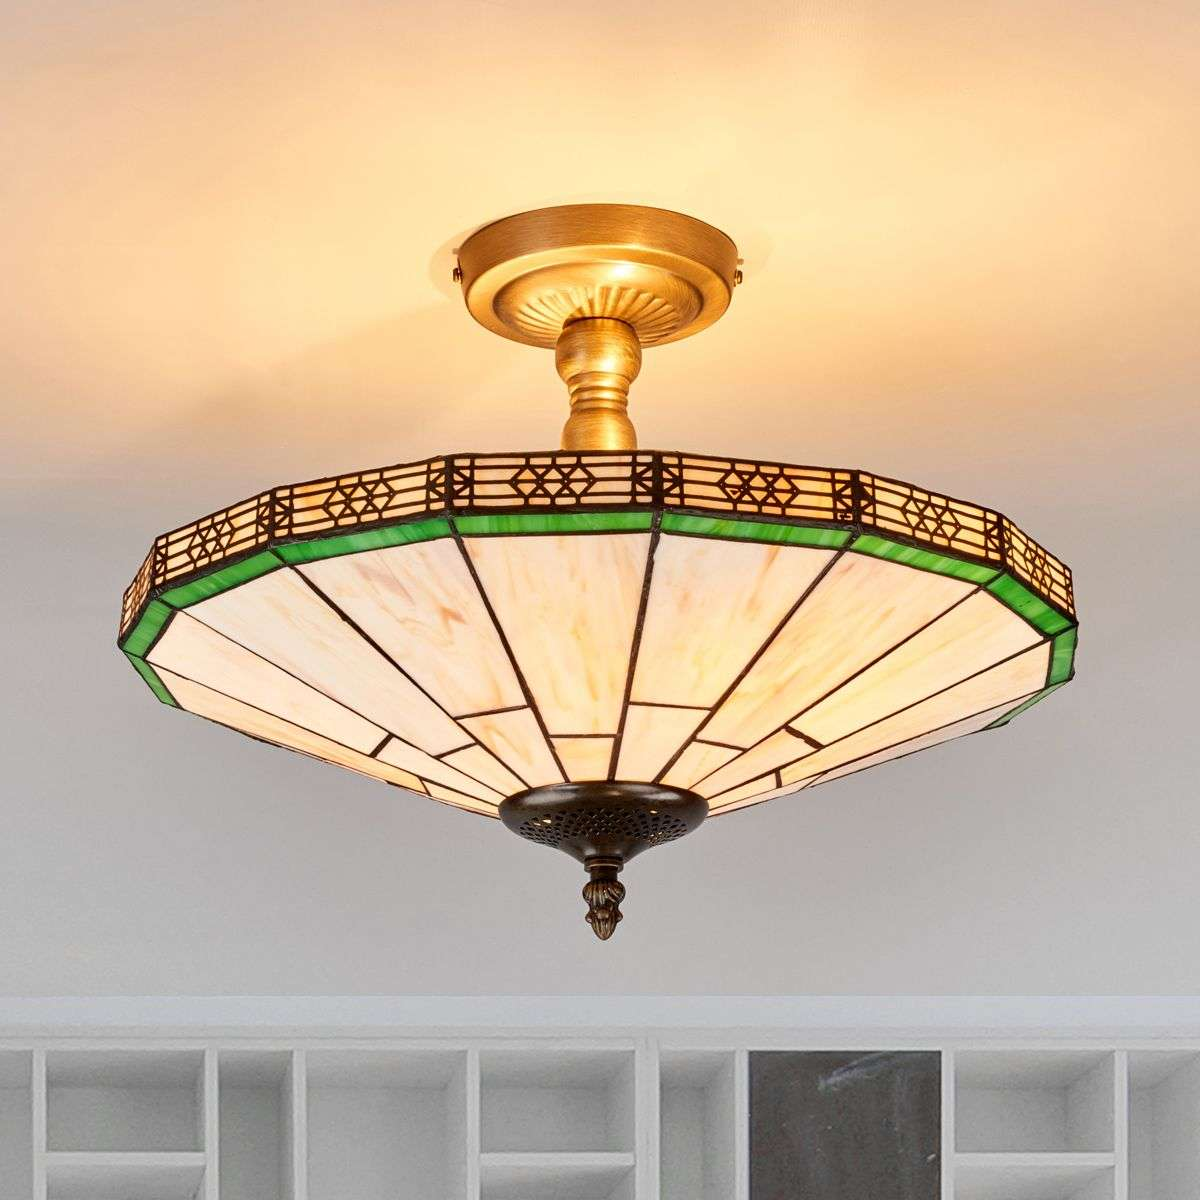 New york classic tiffany style ceiling light lights new york classic tiffany style ceiling light aloadofball Image collections